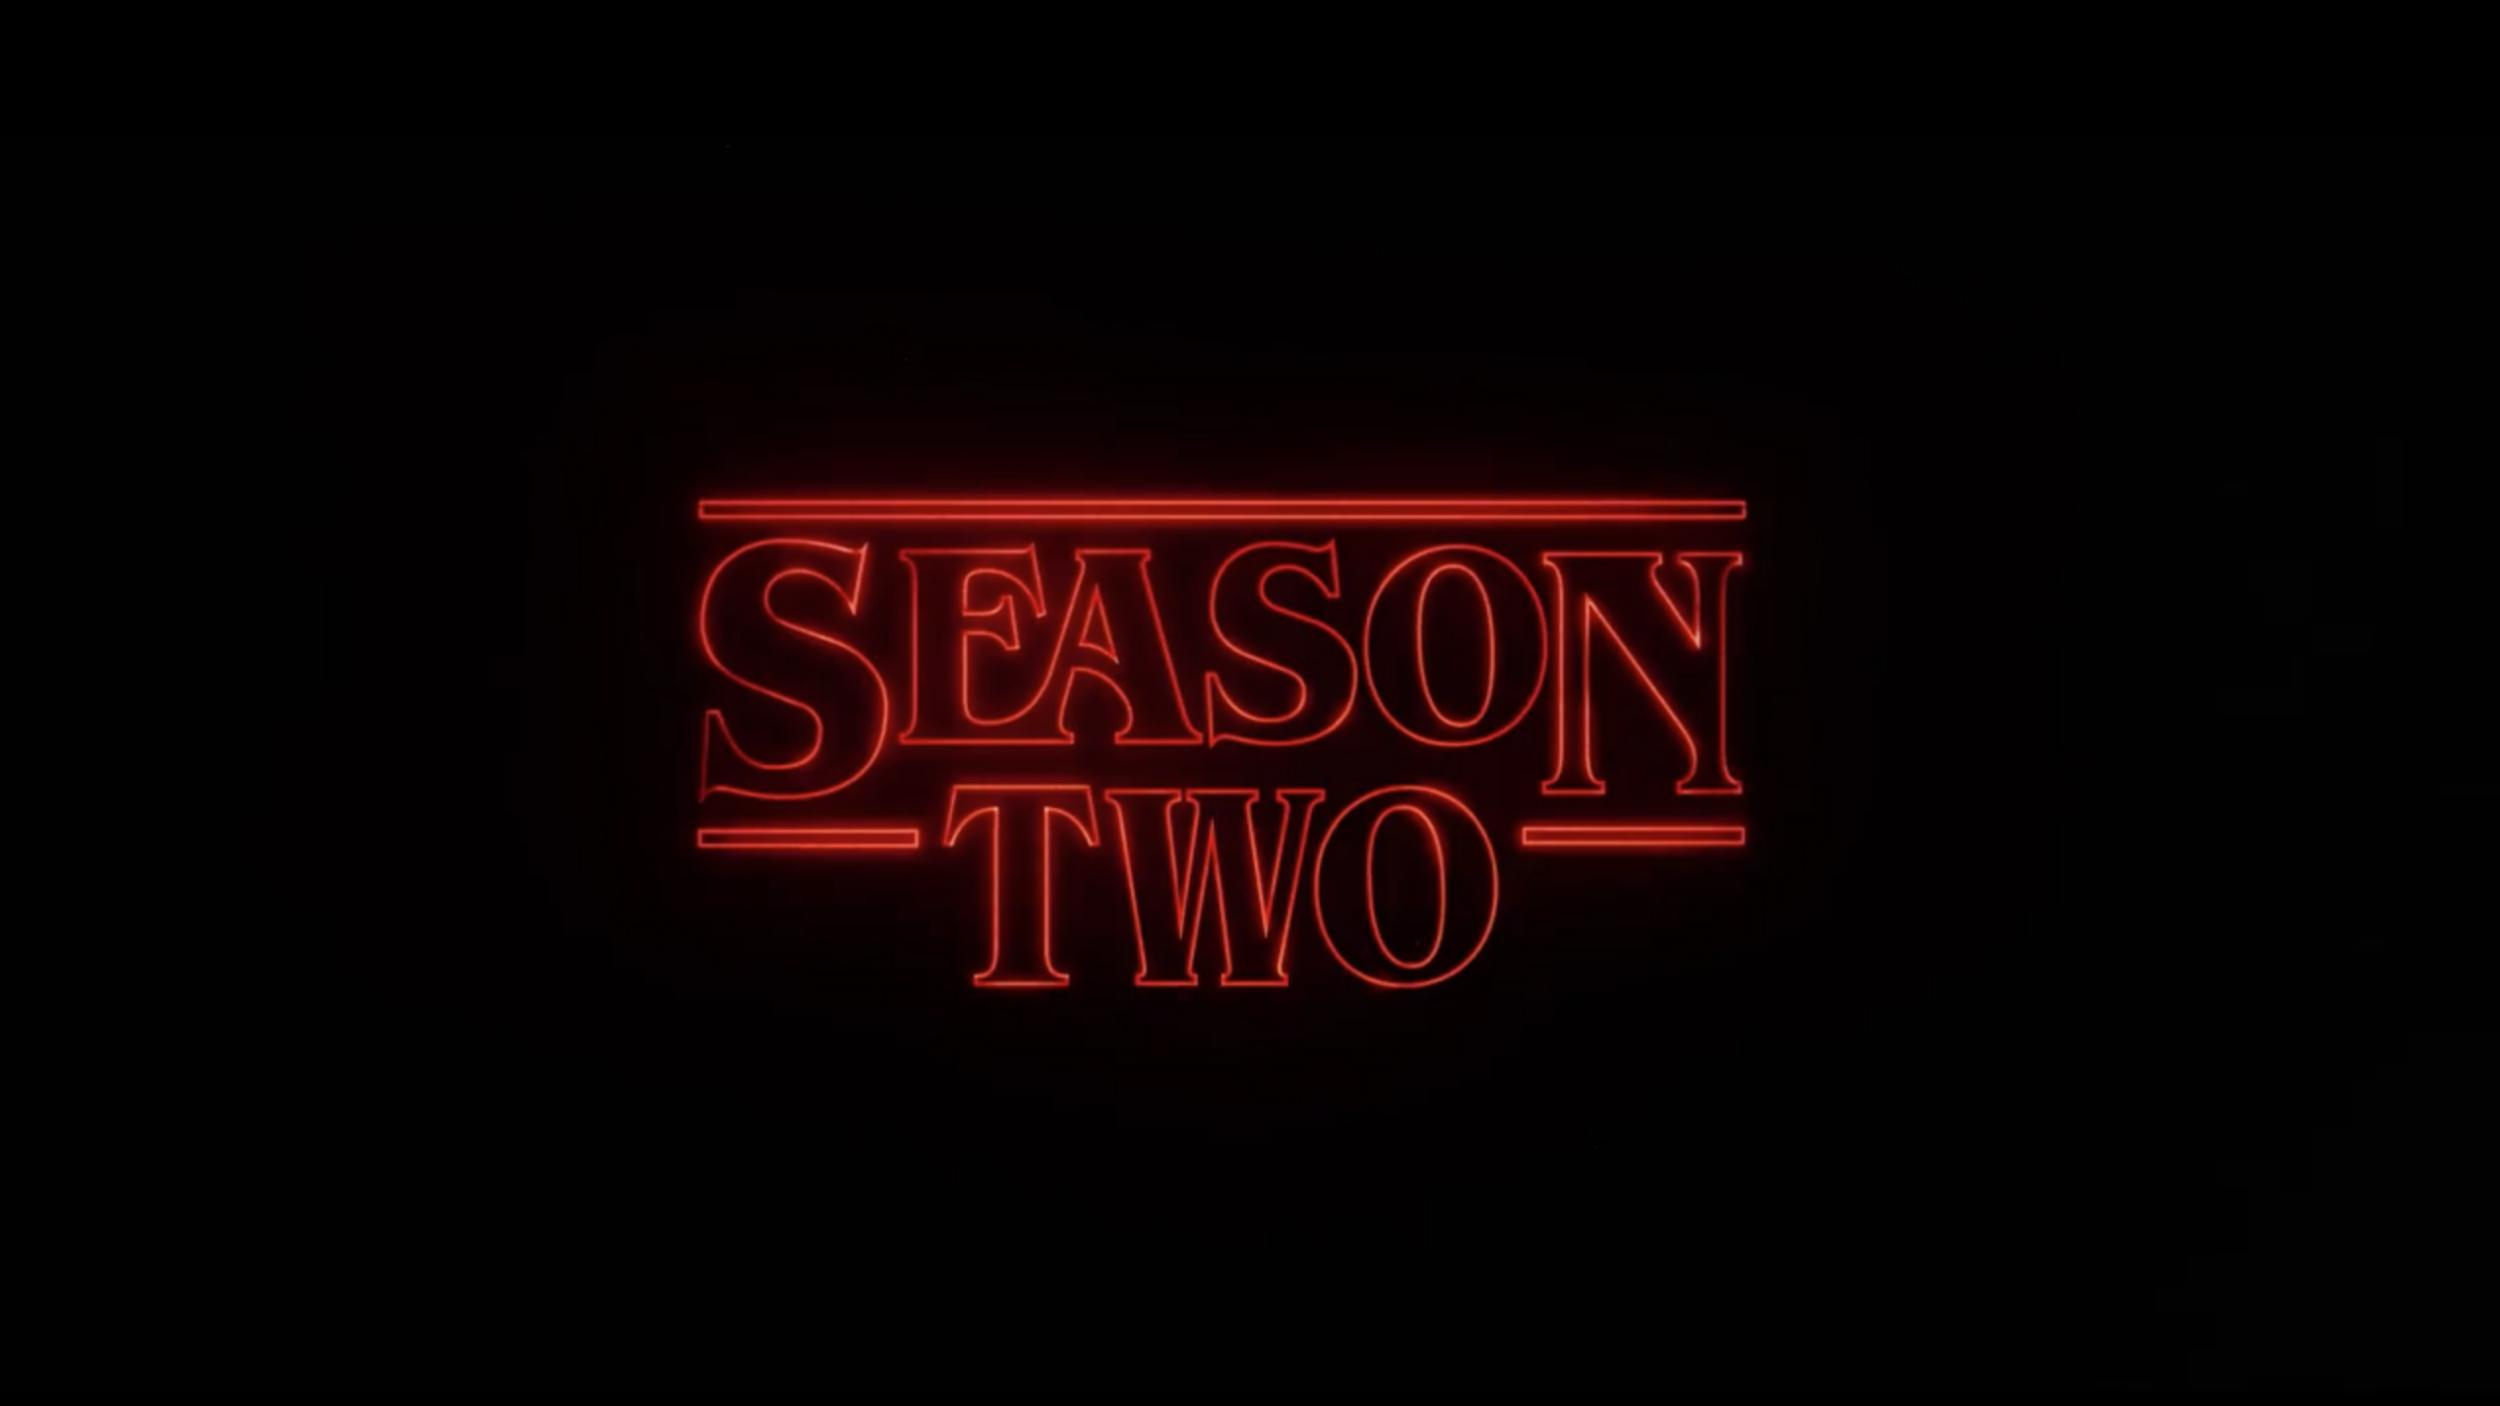 'Stranger Things' Season 2 Super Bowl Spot Teases Epic New Chapter